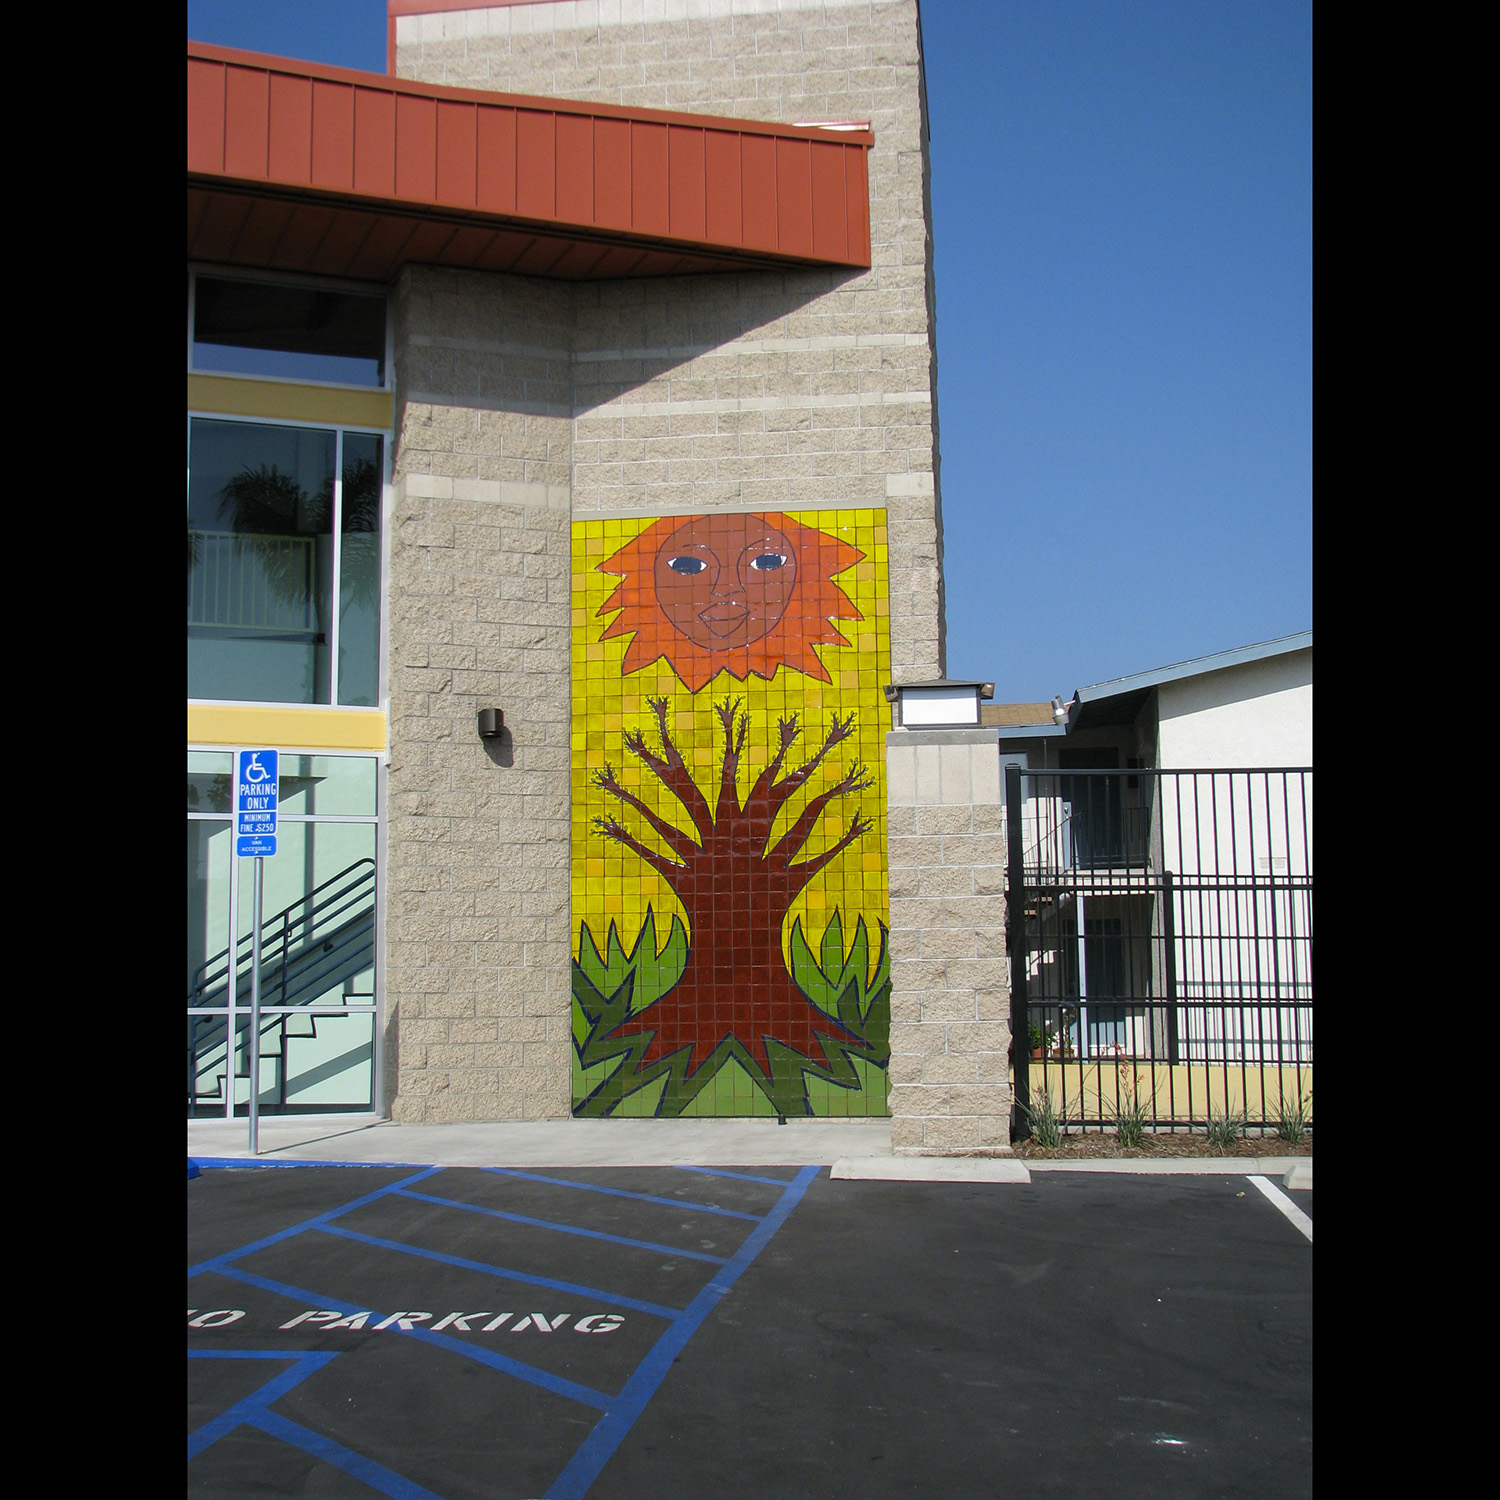 Primavera, tile mural, Buena Clinton Youth and Family Resource Center, Gardena, California, 2010.